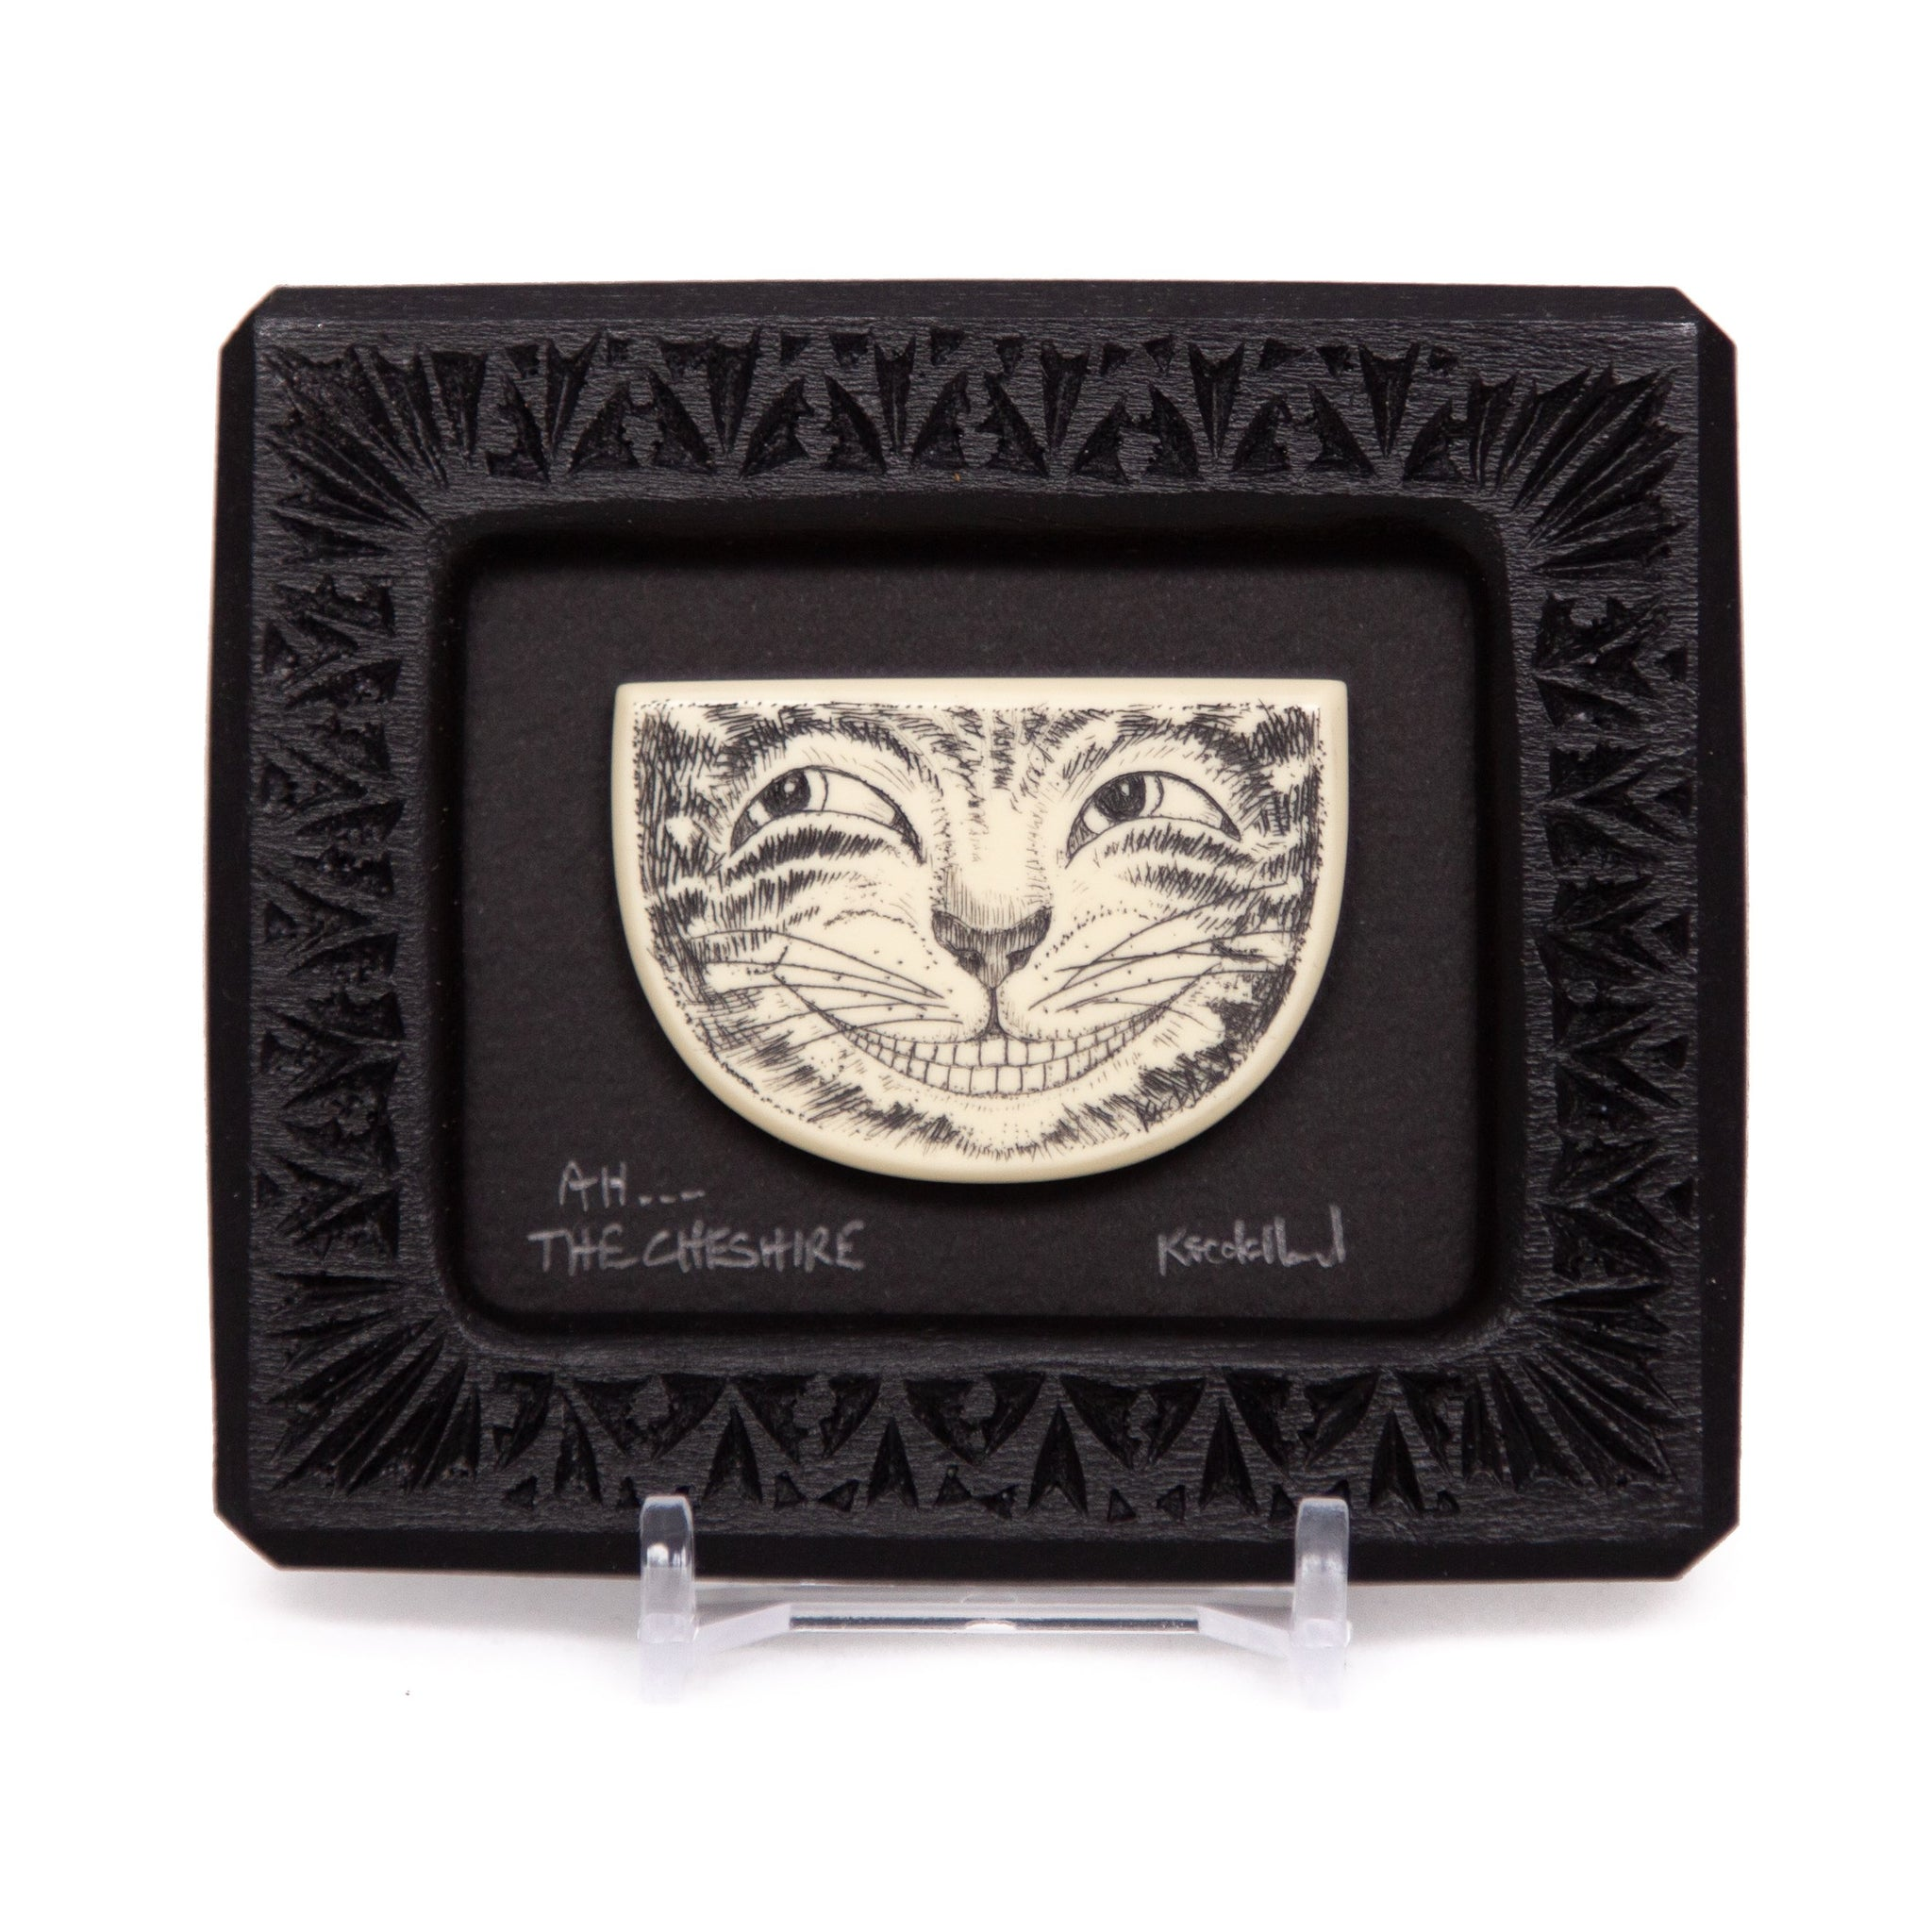 """Ah... The Cheshire"" Small Chip Carved Frame"